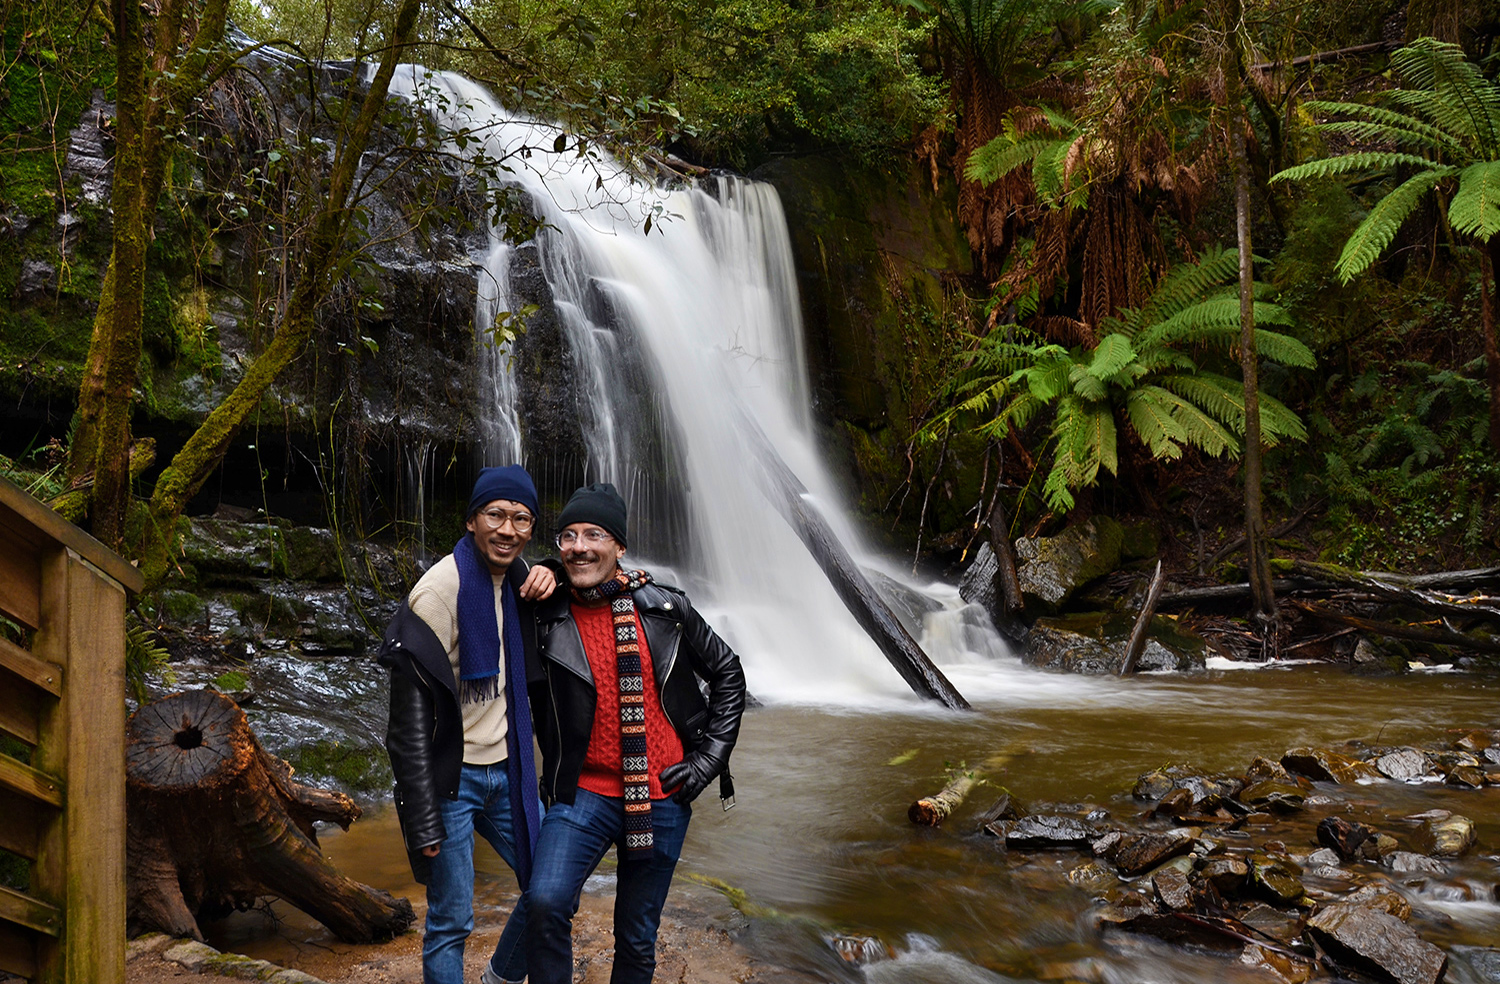 Lilydale Falls, Things to do in Launceston Tasmania